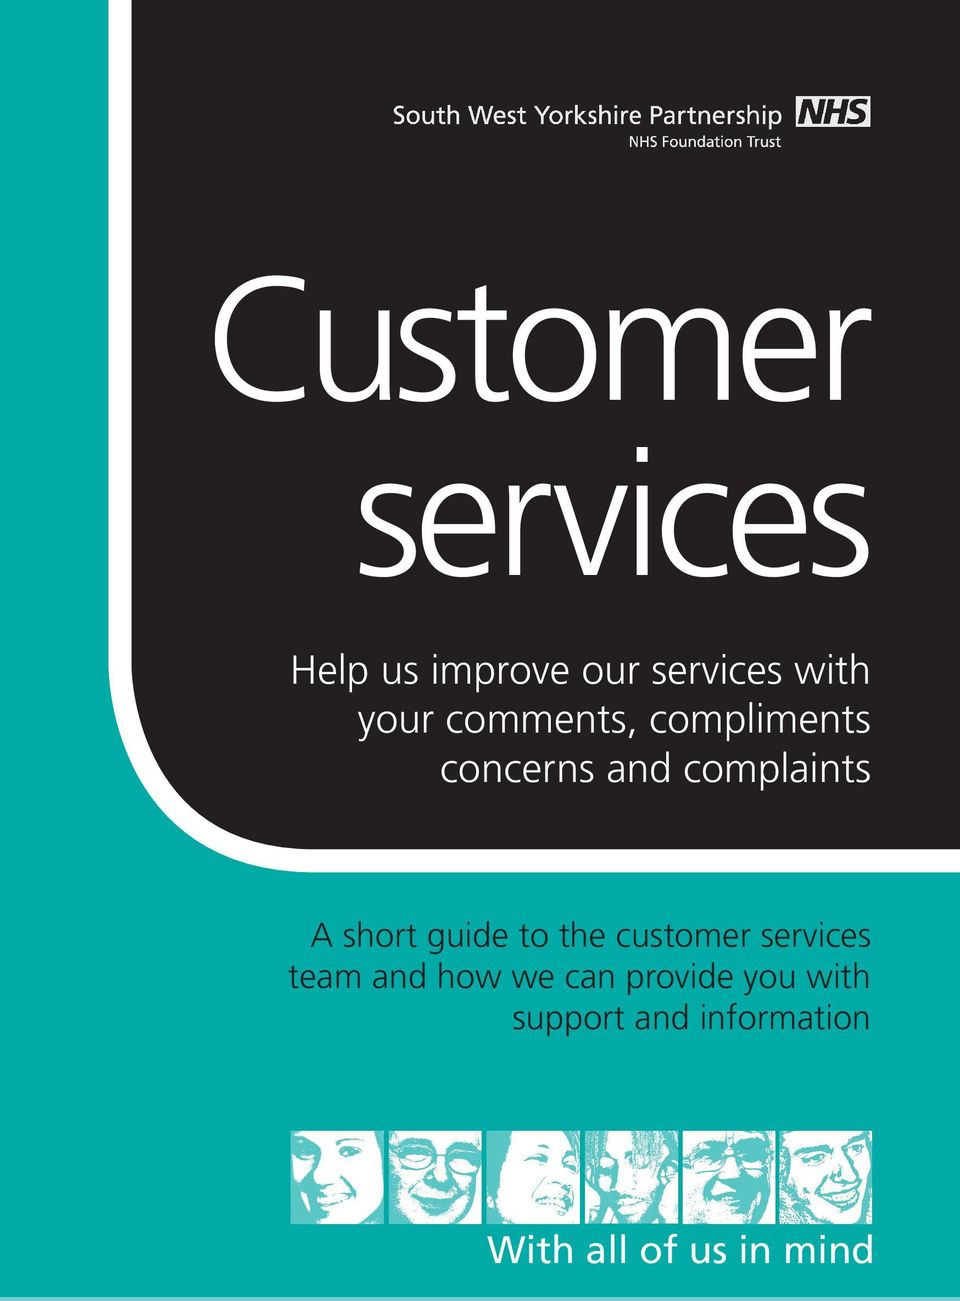 short guide to the customer services team and how we can